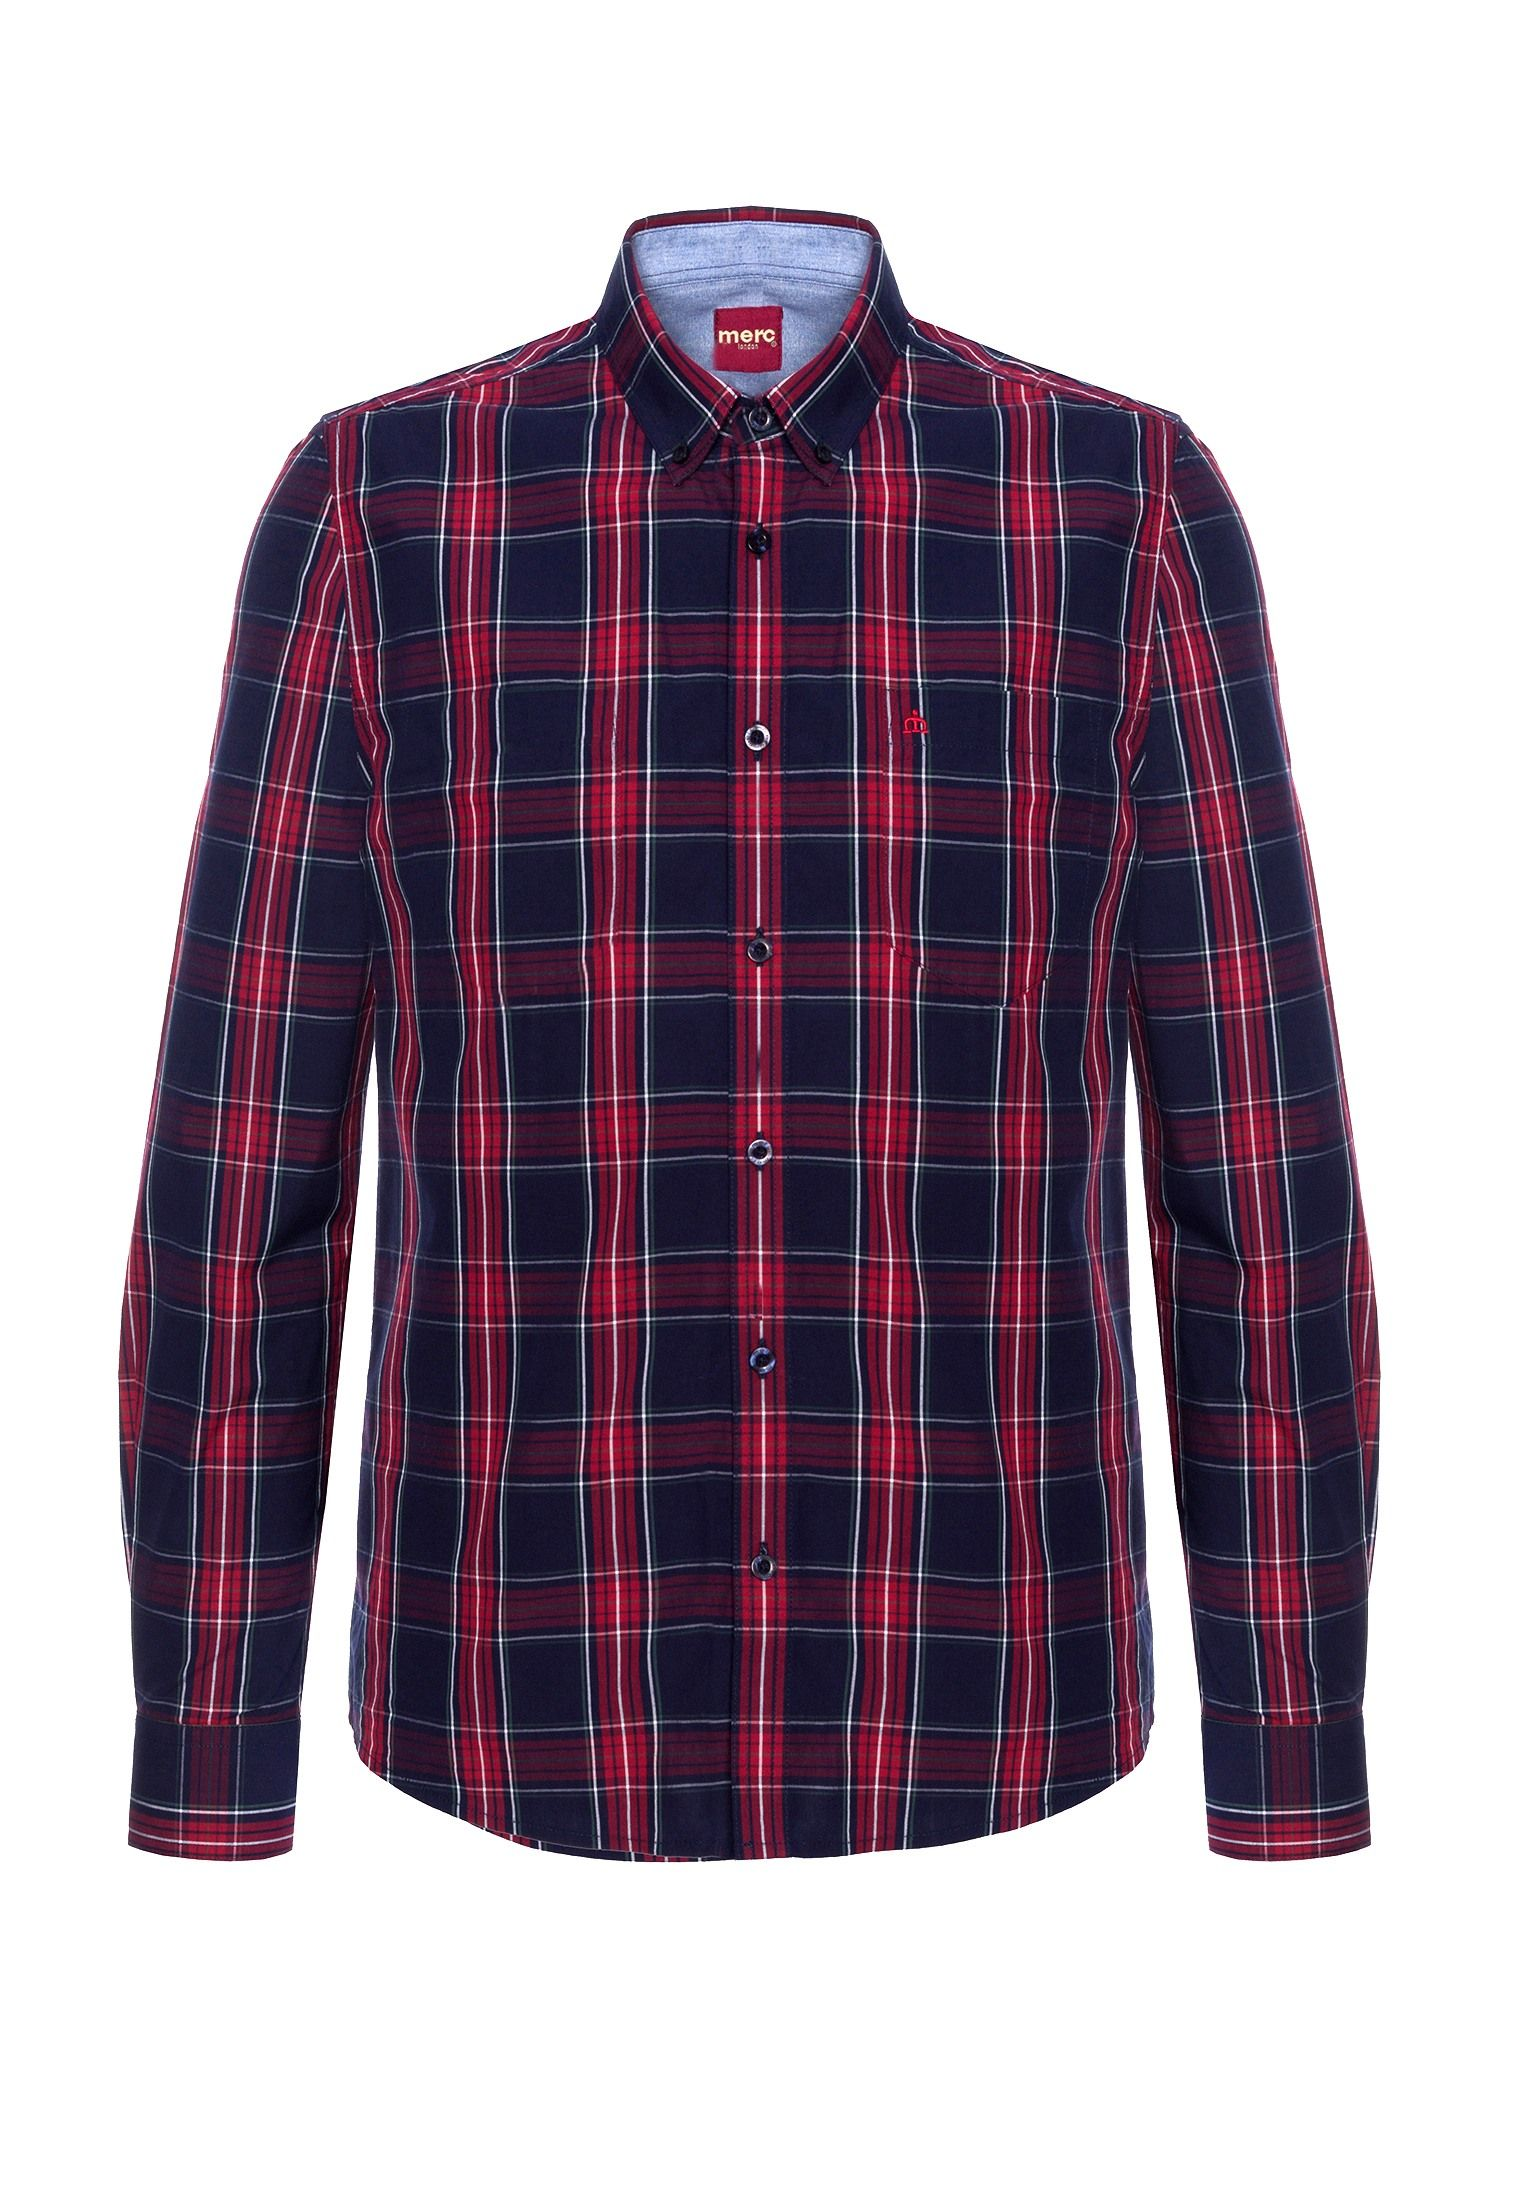 Harcourt Mens Long Sleeve Cotton Shirt With Large Check Pattern In Navy